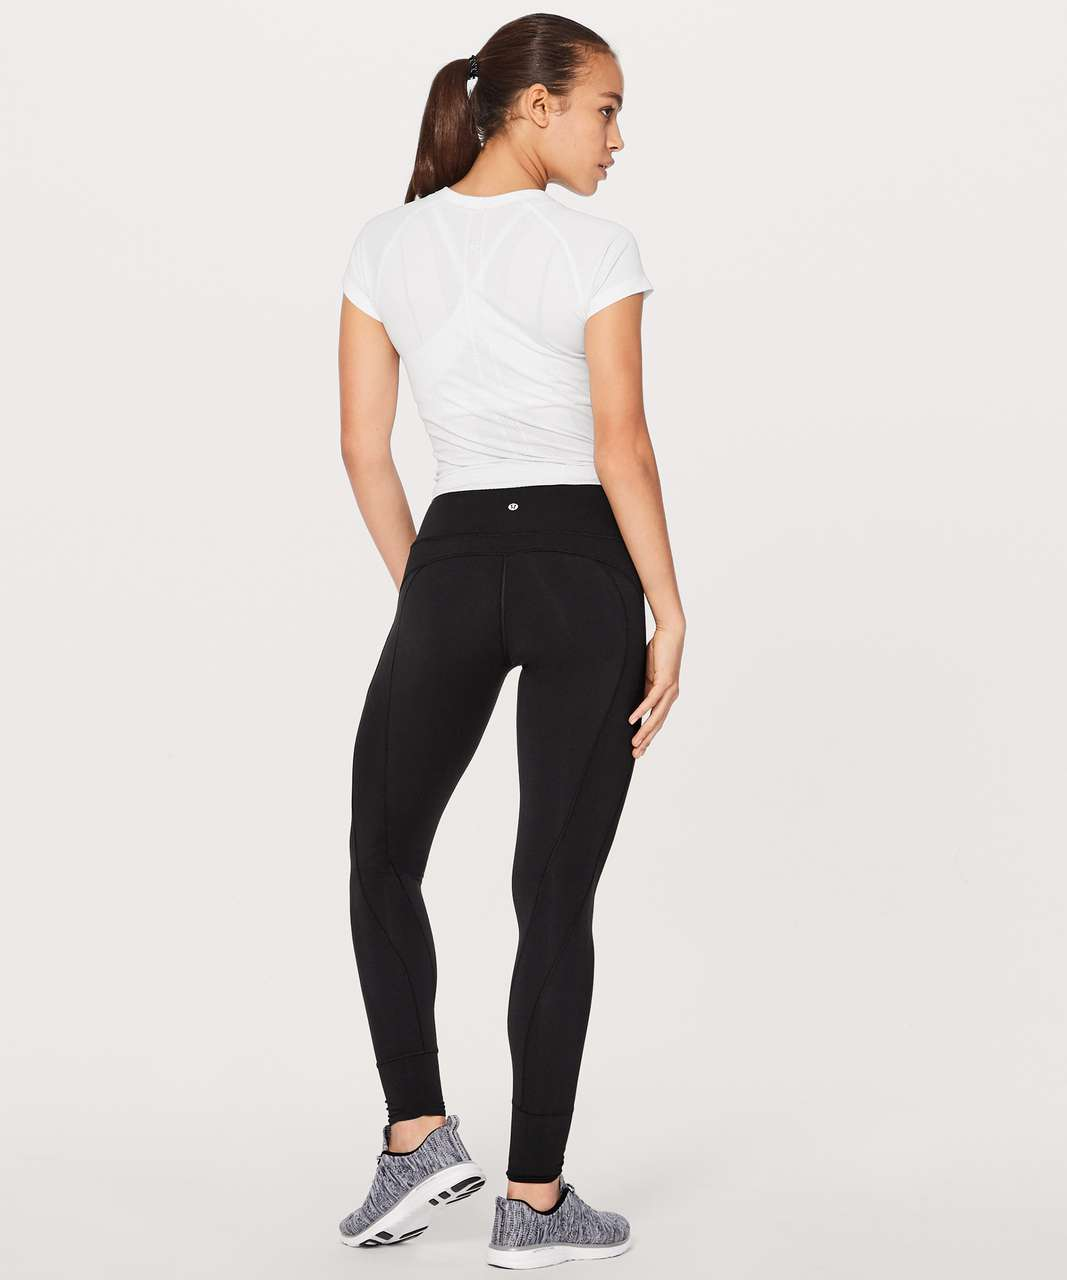 91fe35724 Lululemon Rush Hour Tight - Black - lulu fanatics